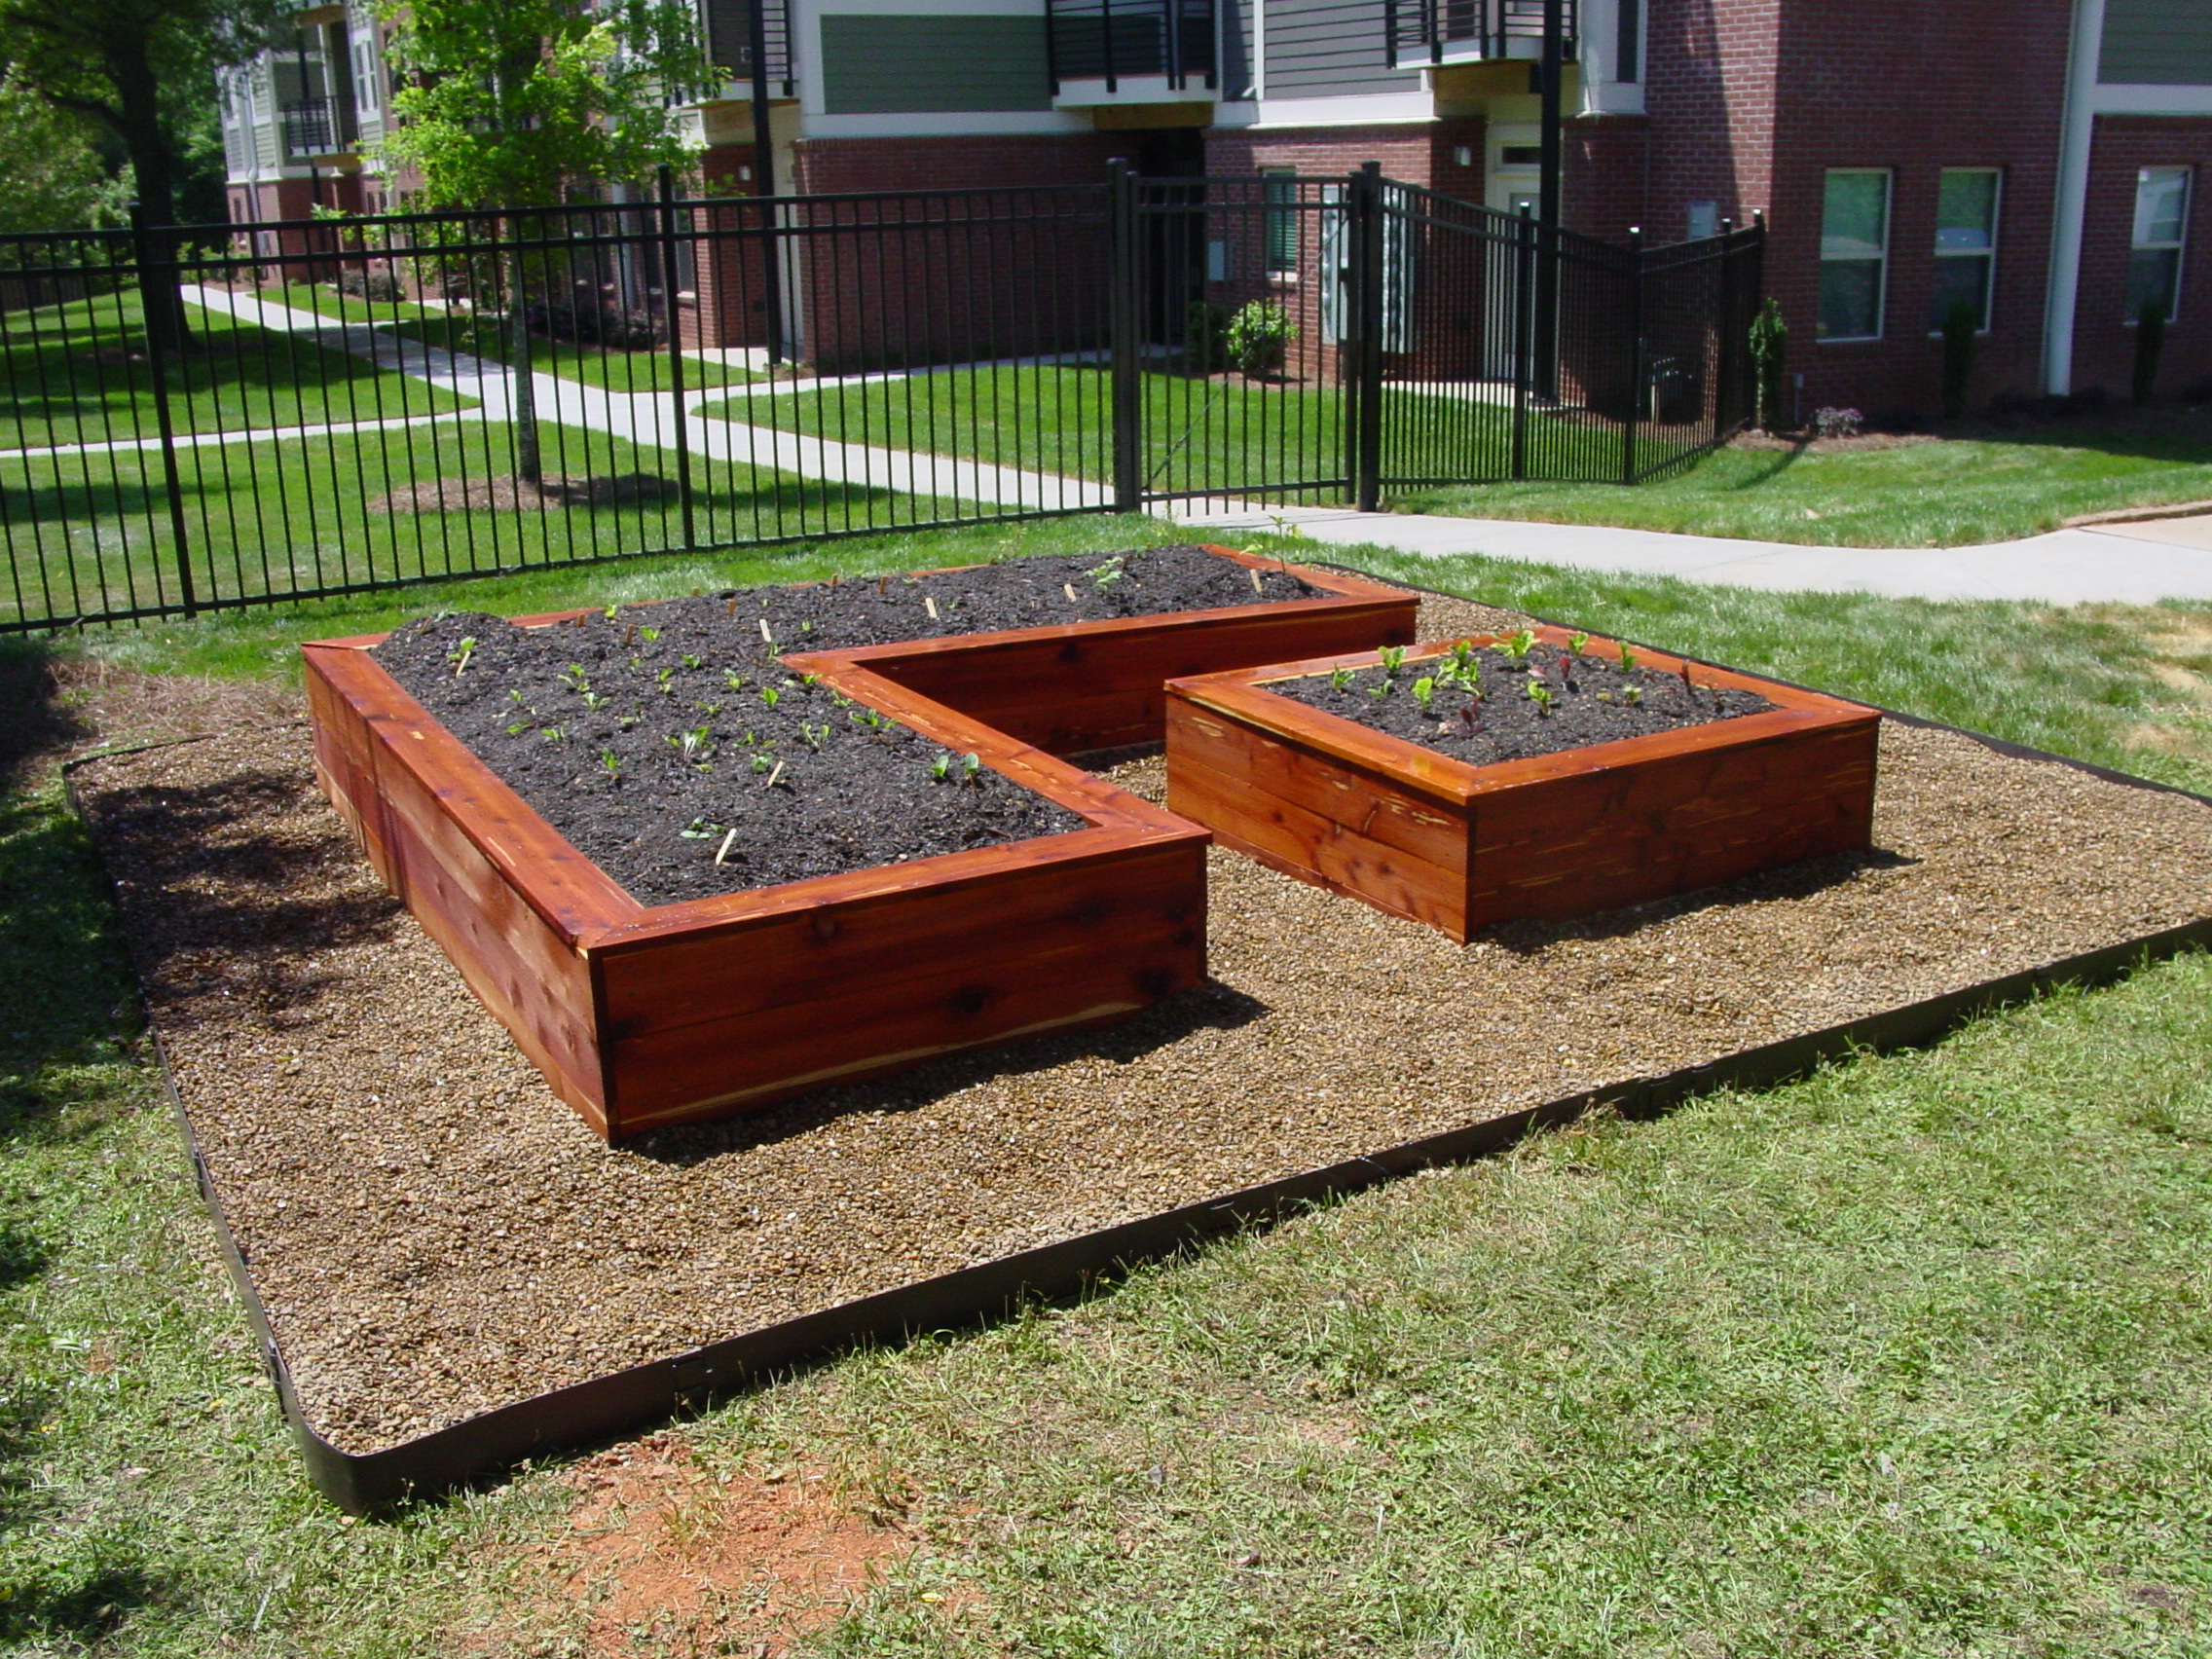 Raised Garden Beds for Sale in Charlotte, NC - Microfarm ... on cinder blocks raised garden, raised bed flower garden design, veggie garden, raised garden planter boxes, raised backyard landscaping, raised backyard design, raised bed garden layouts, raised bed planting layout guides, raised backyard playground, raised vegetable beds, raised flower bed design ideas, raised garden layout plans, raised garden ideas,